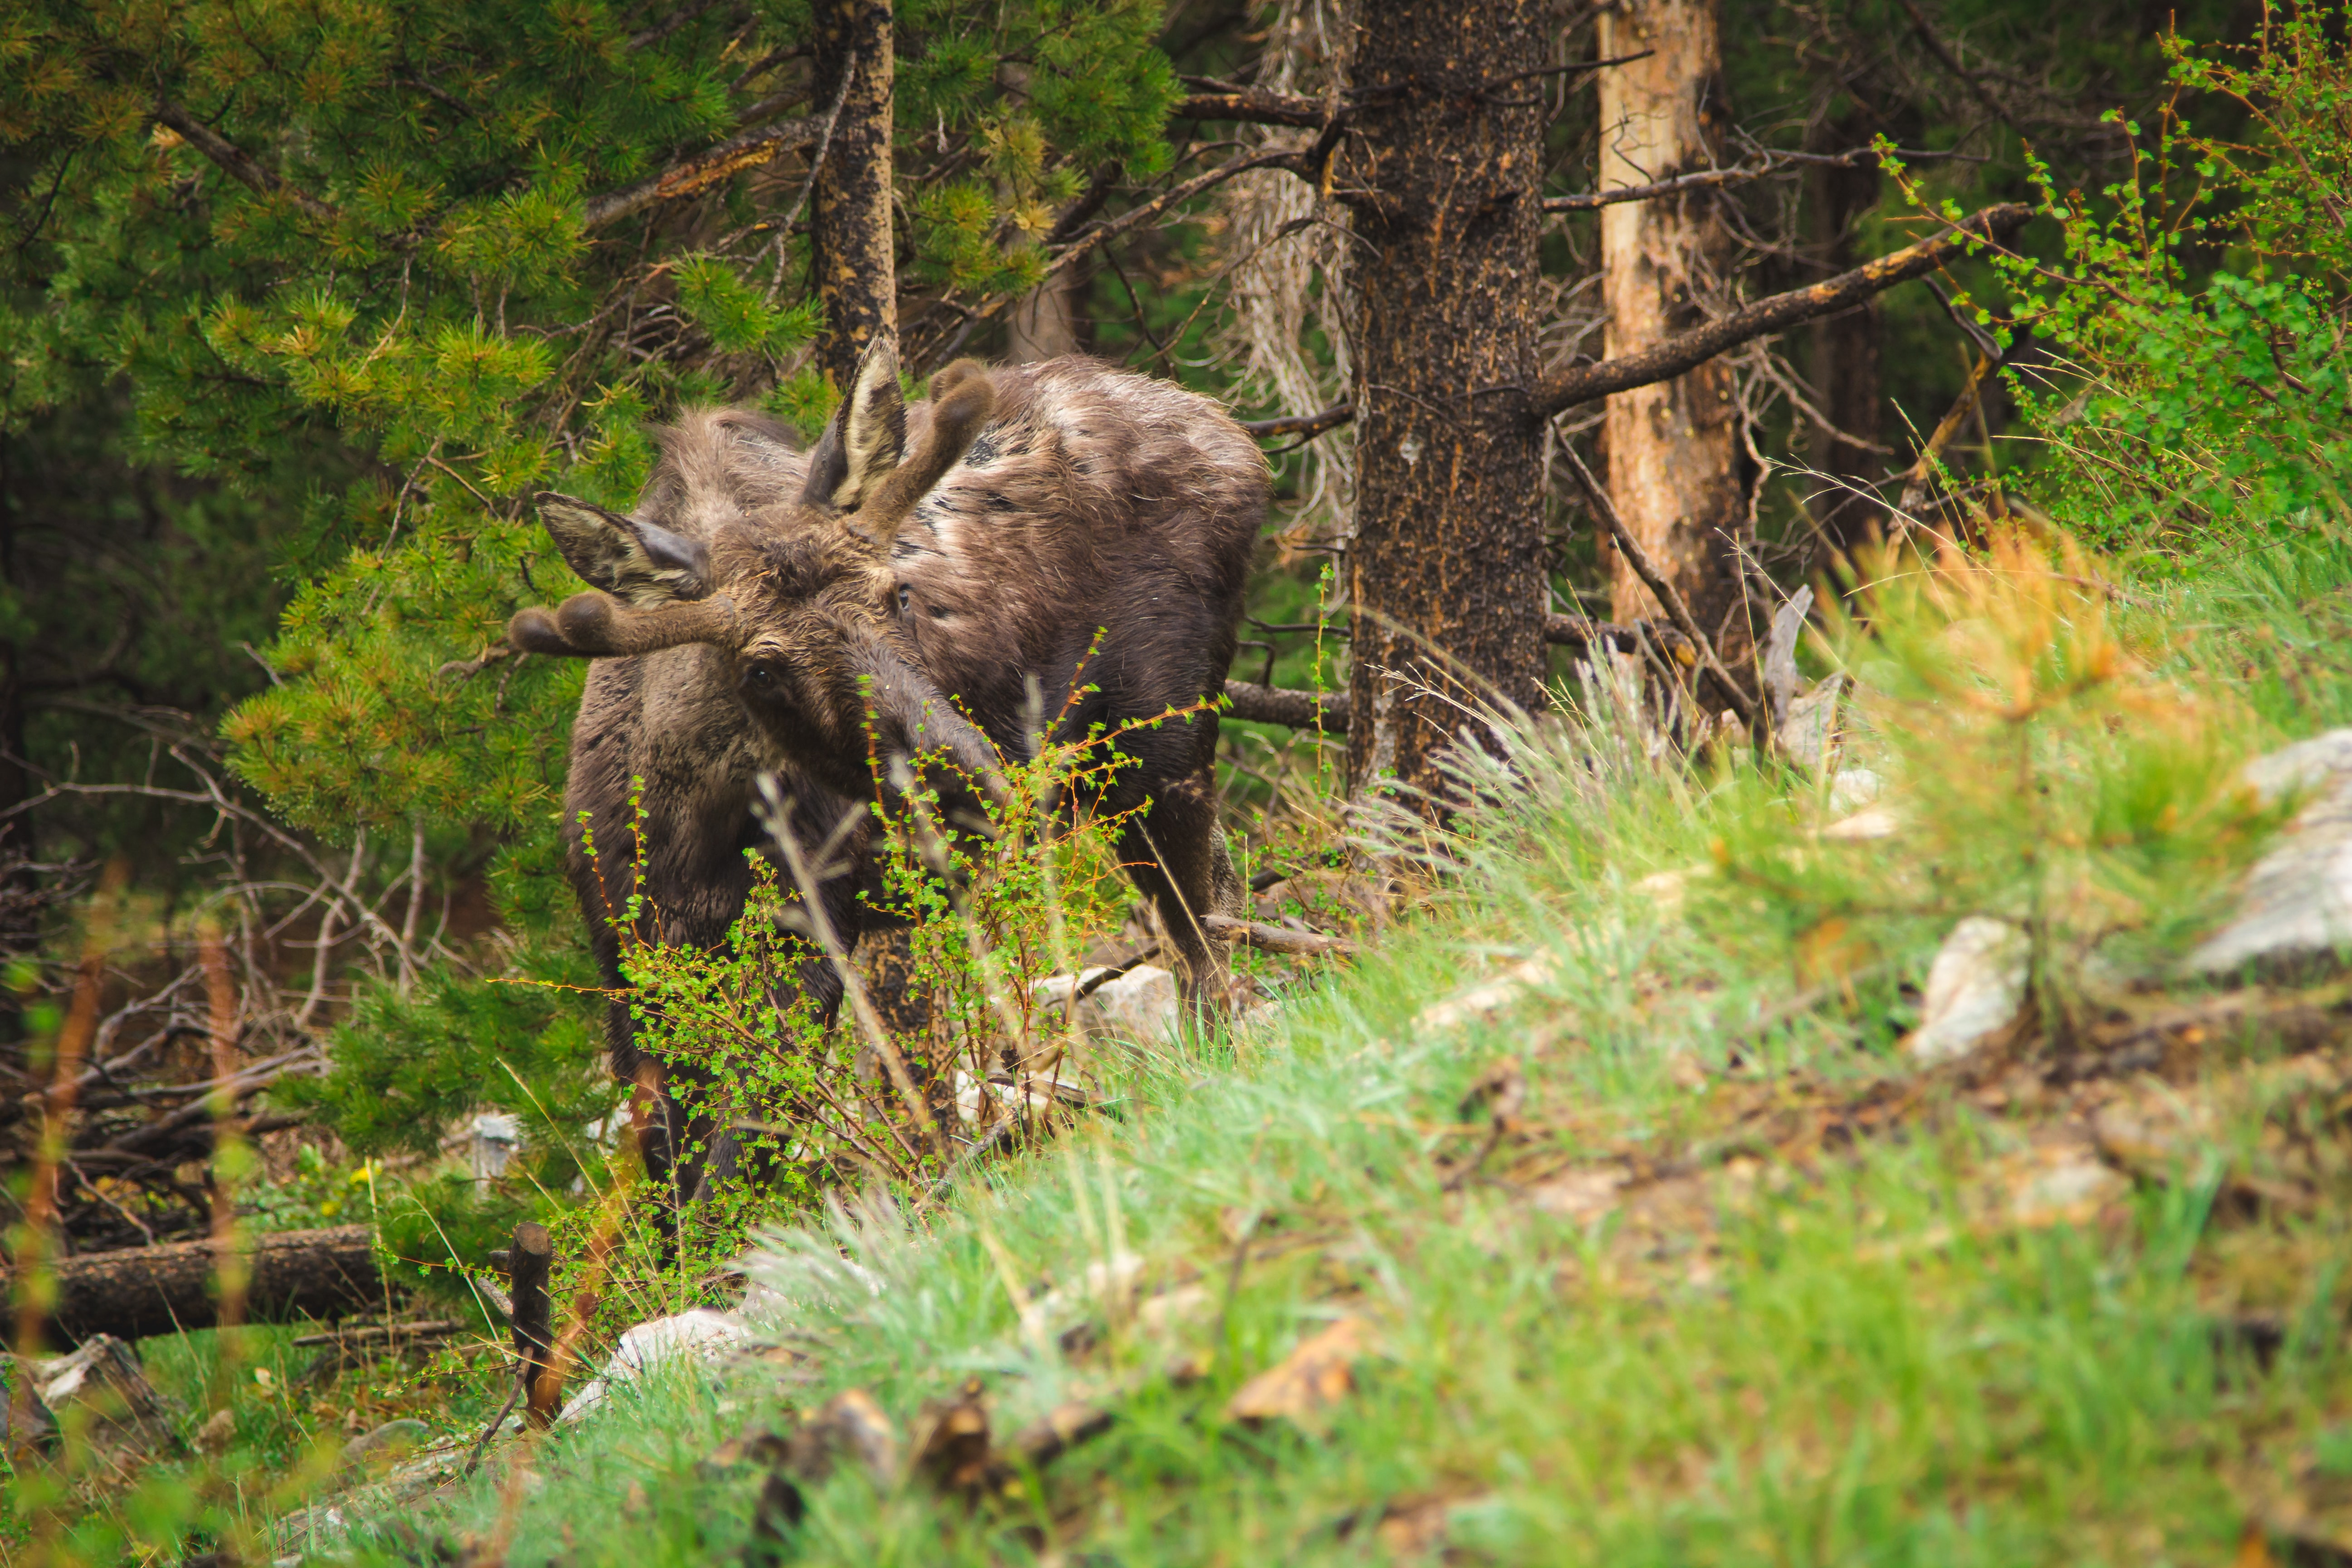 A moose in the forest, partially obscured by green brushes